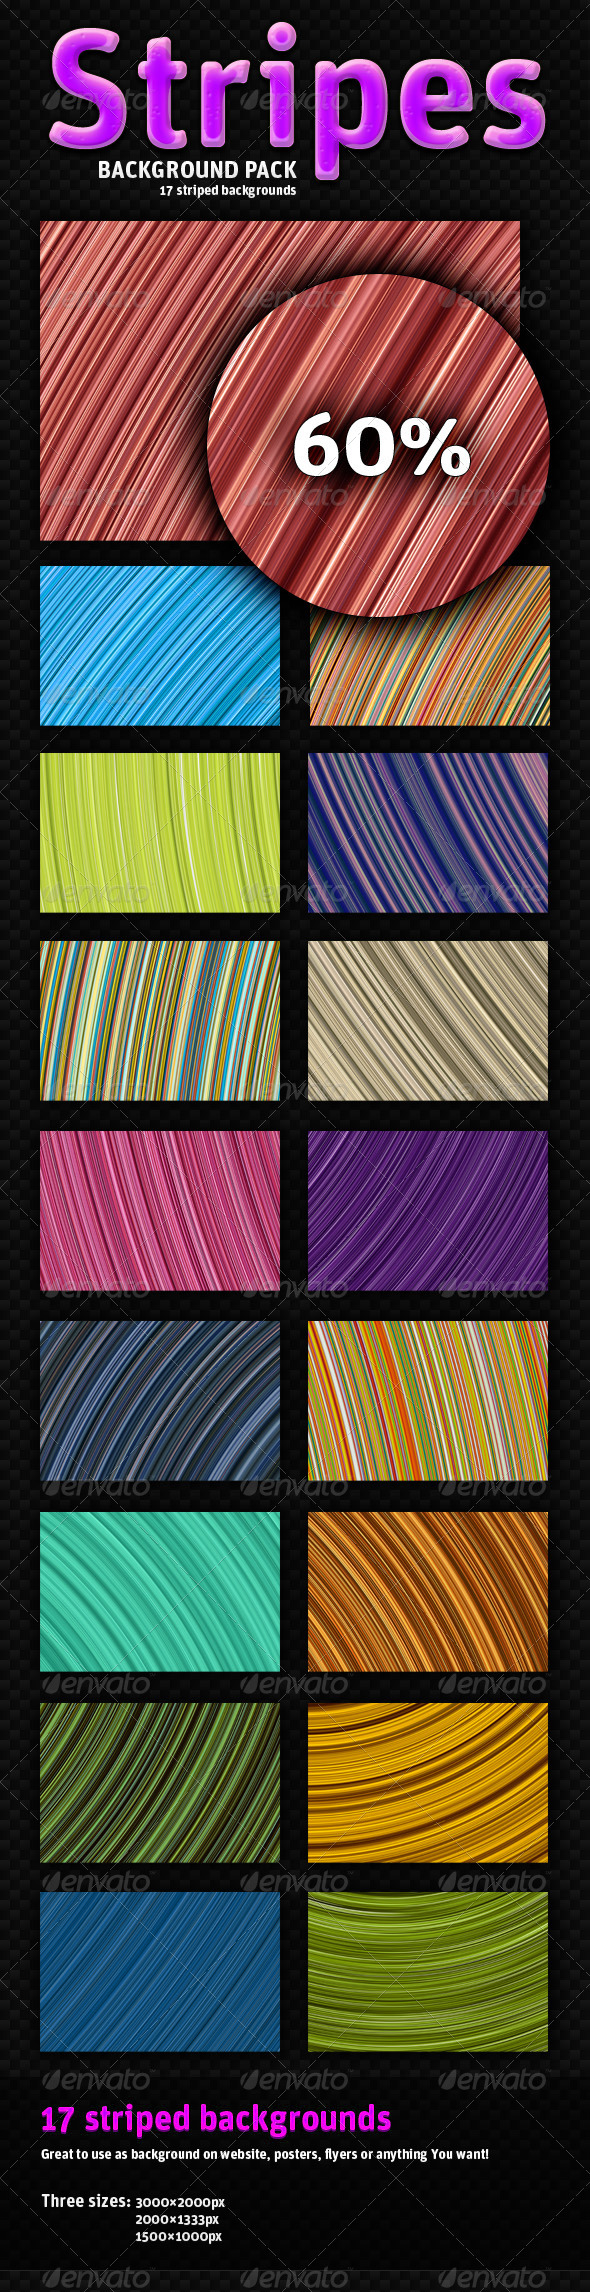 Striped Background Pack - 17 Variants - Backgrounds Graphics